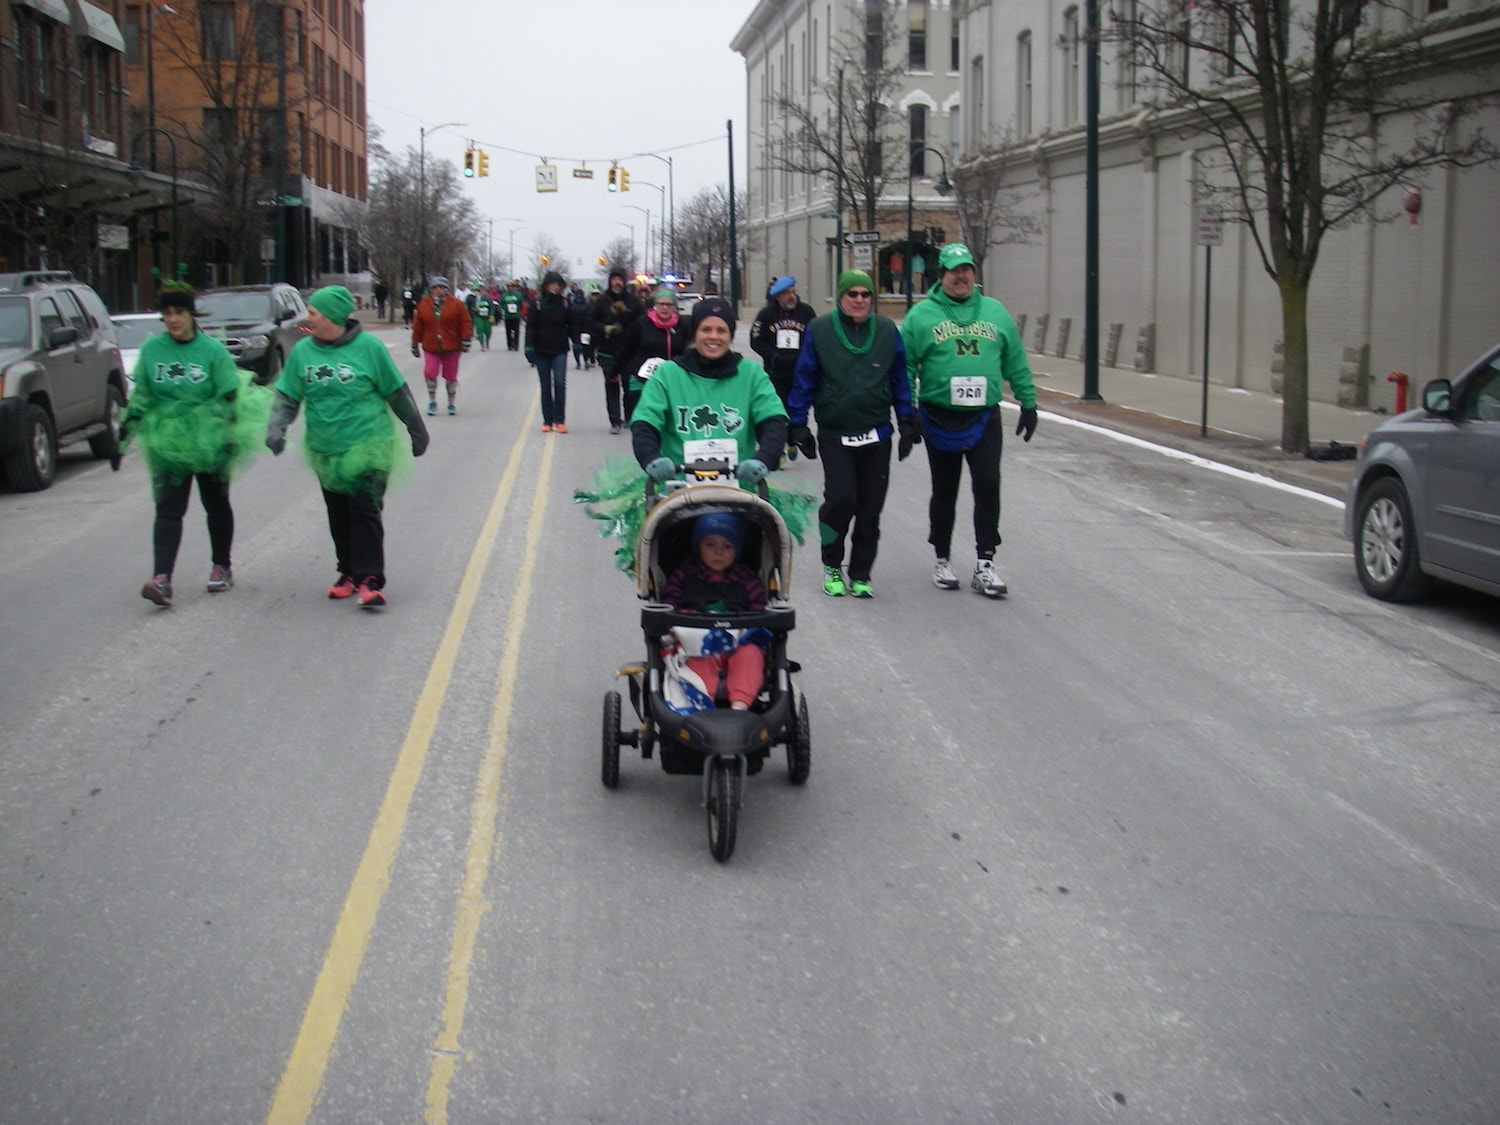 Jessica Stark, 33, and daughter Ally, 4, take on the challenge of the Leapin' Leprechaun Race.